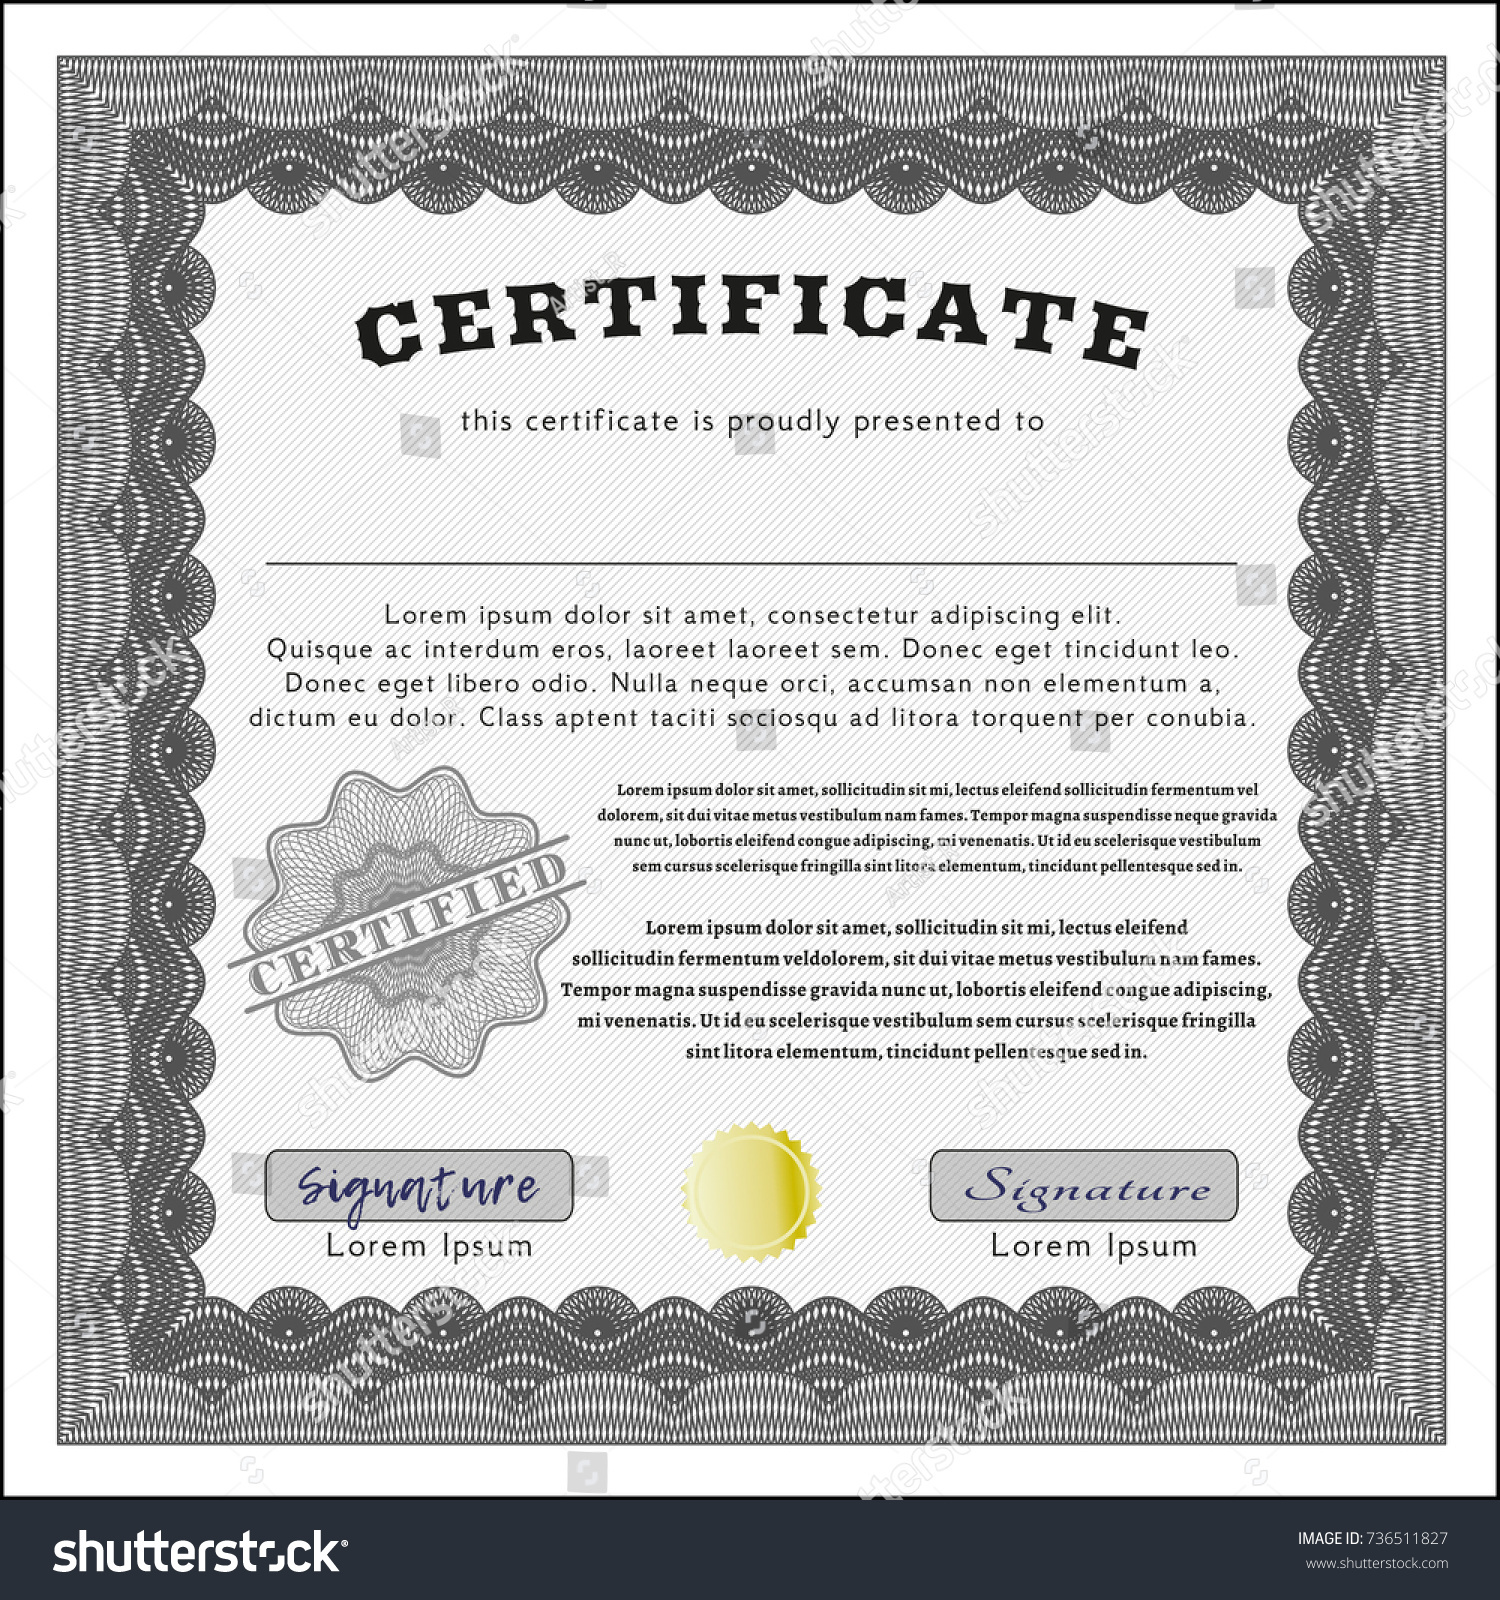 grey certificate diploma award template complex stock vector  grey certificate diploma or award template complex background detailed money pattern